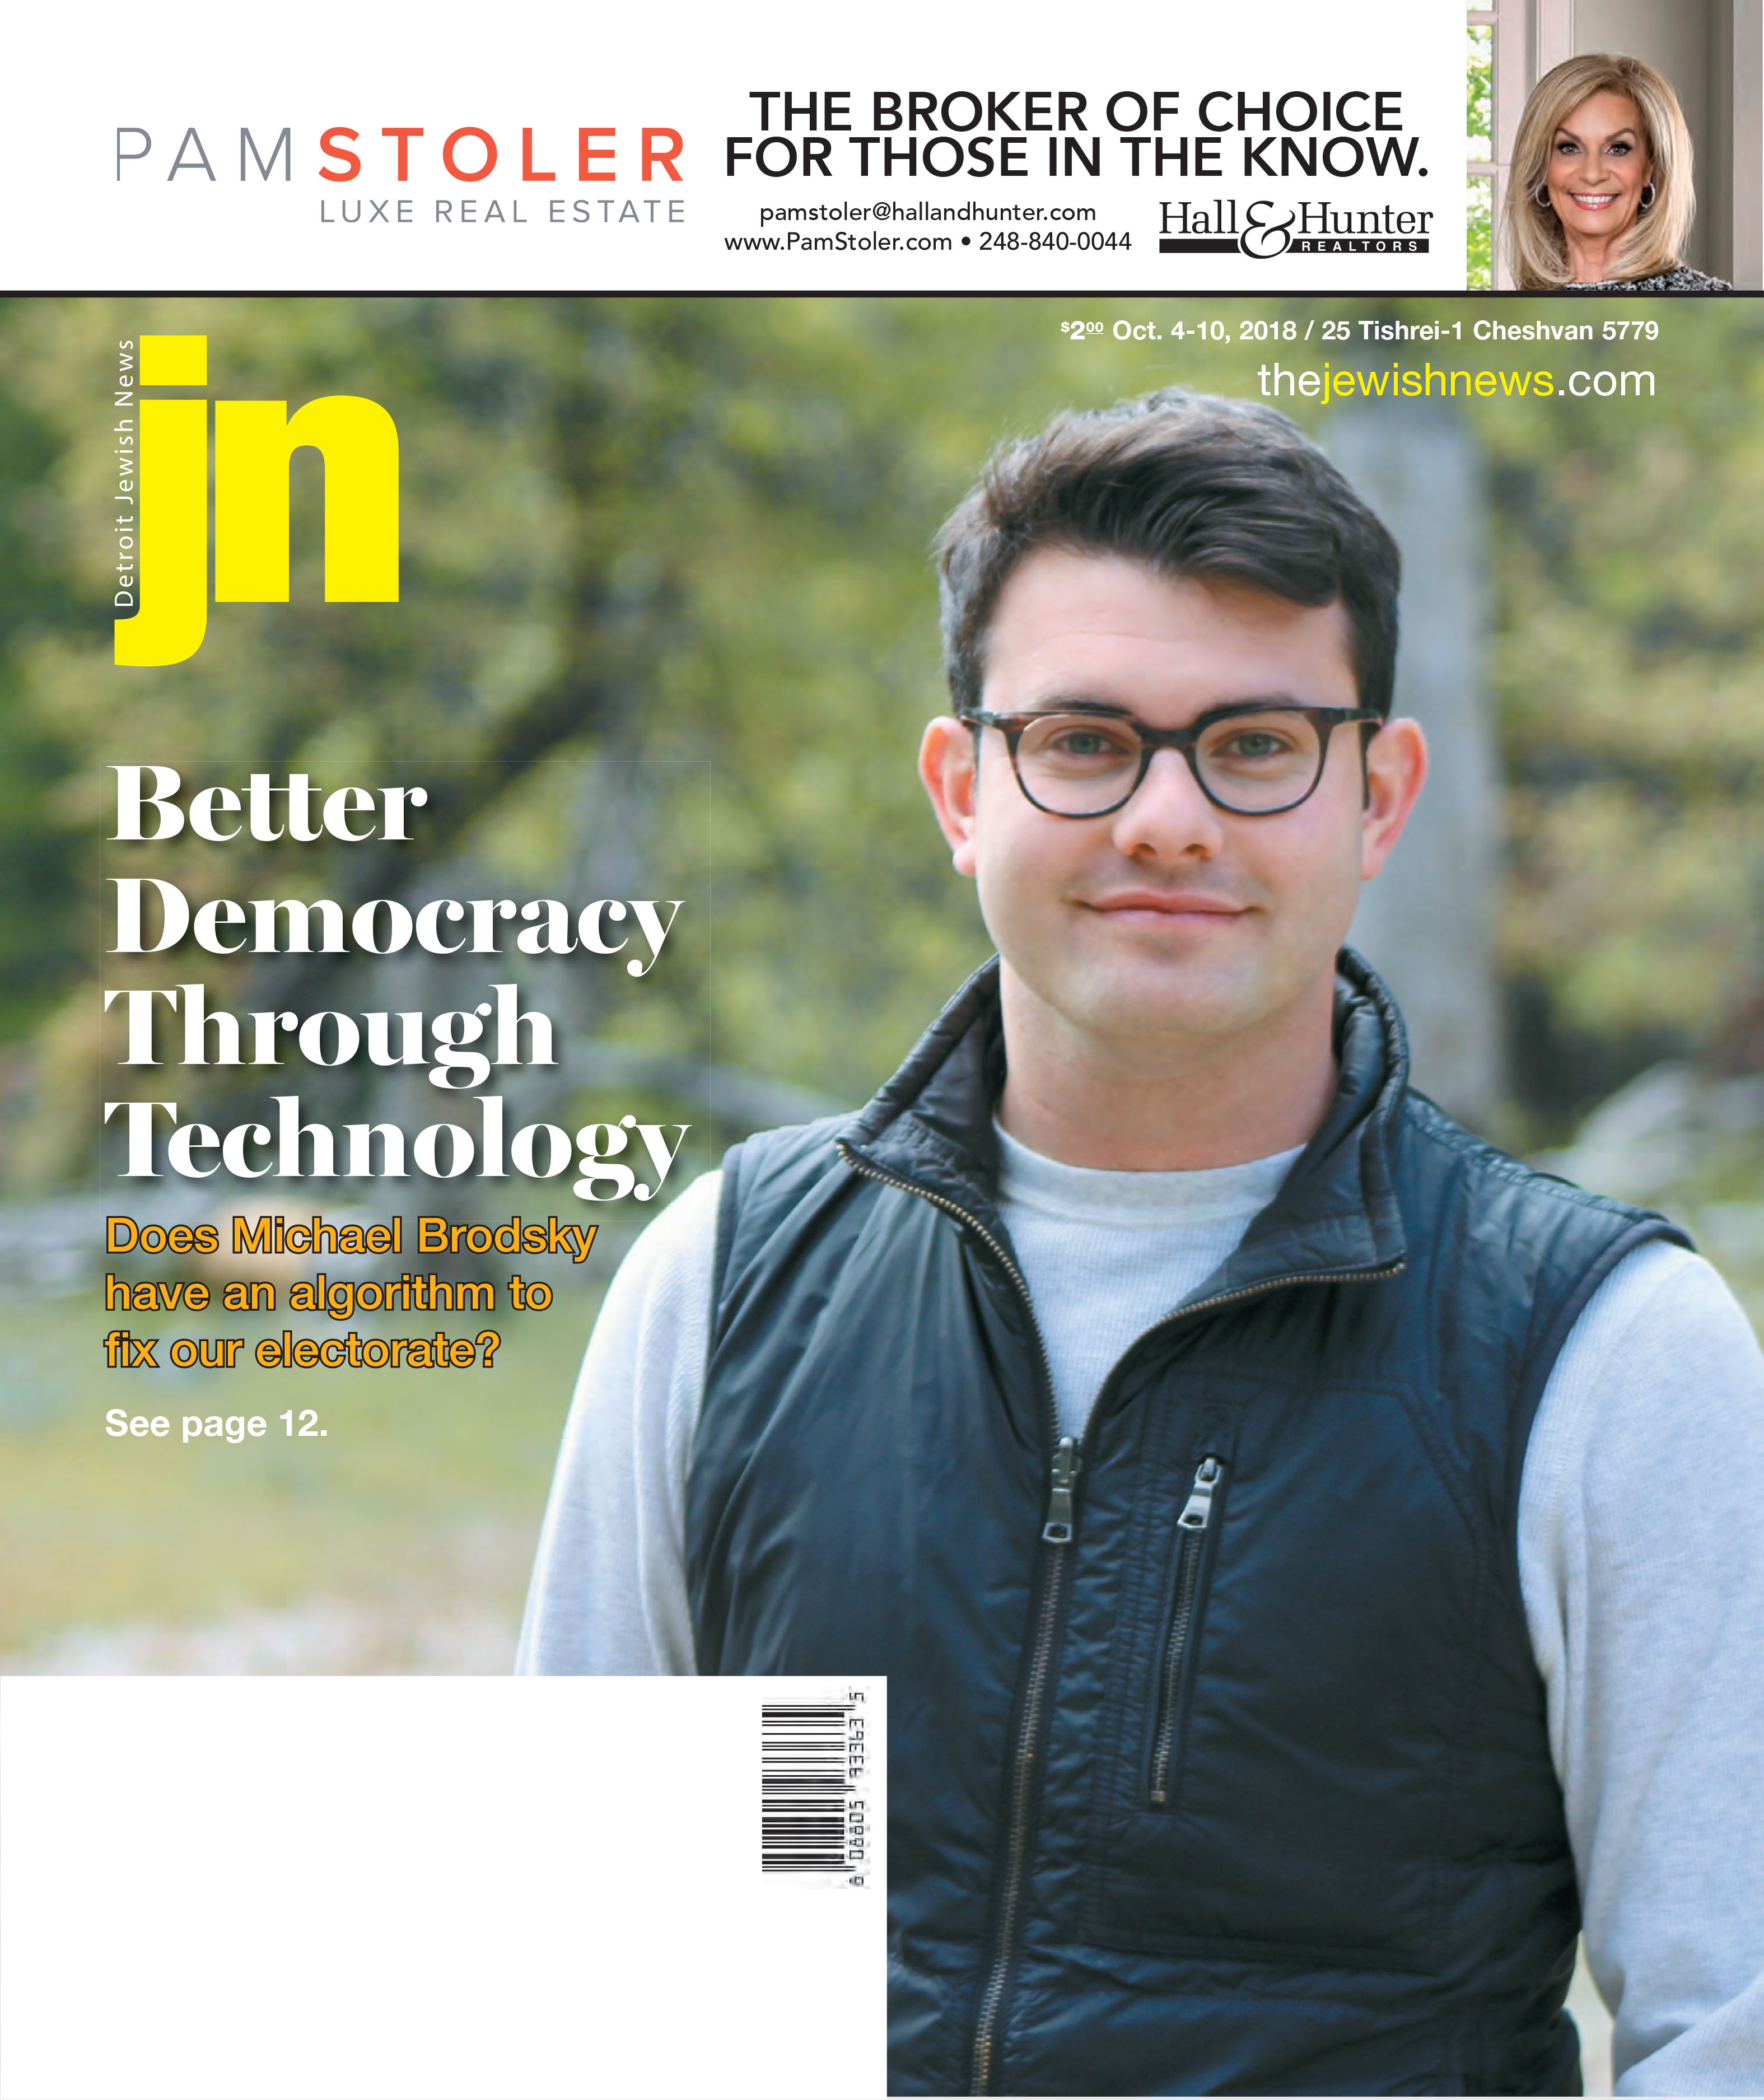 Detroit Jewish News October 4, 2018 issue front cover featuring Michael Brodsky on the cover